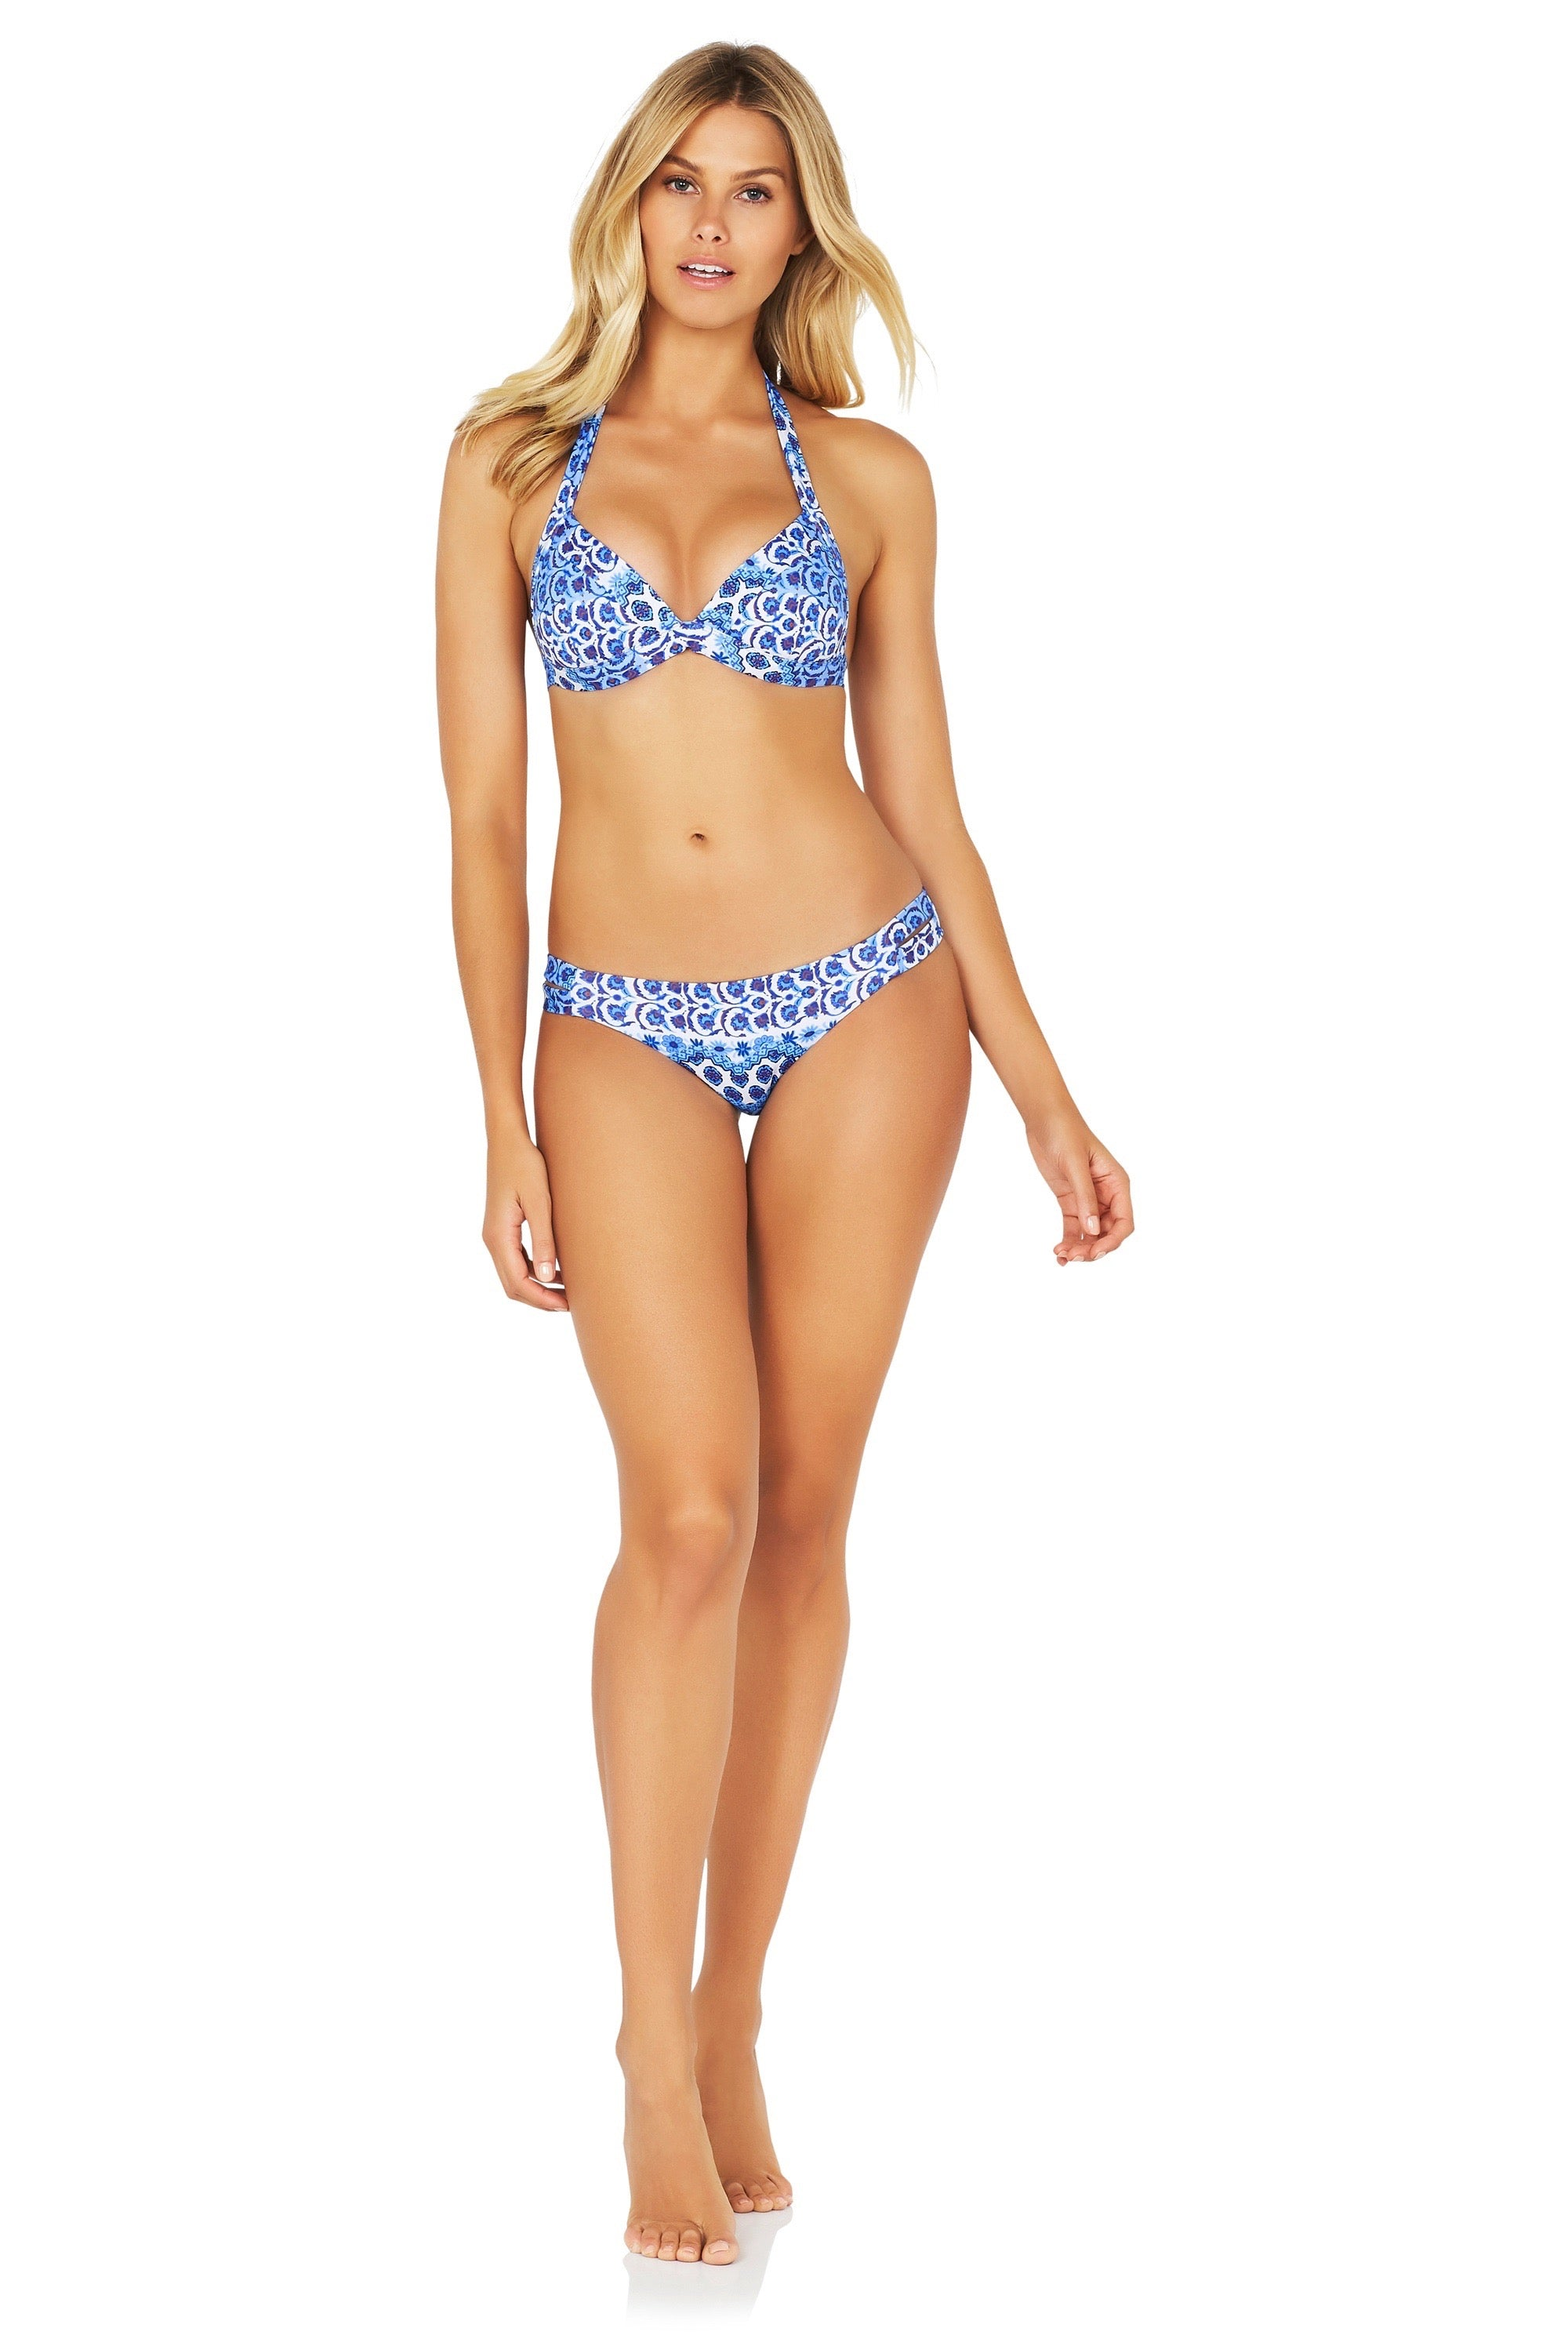 CONSTANTINE MOULDED FIXED TRIANGLE BIKINI TOP